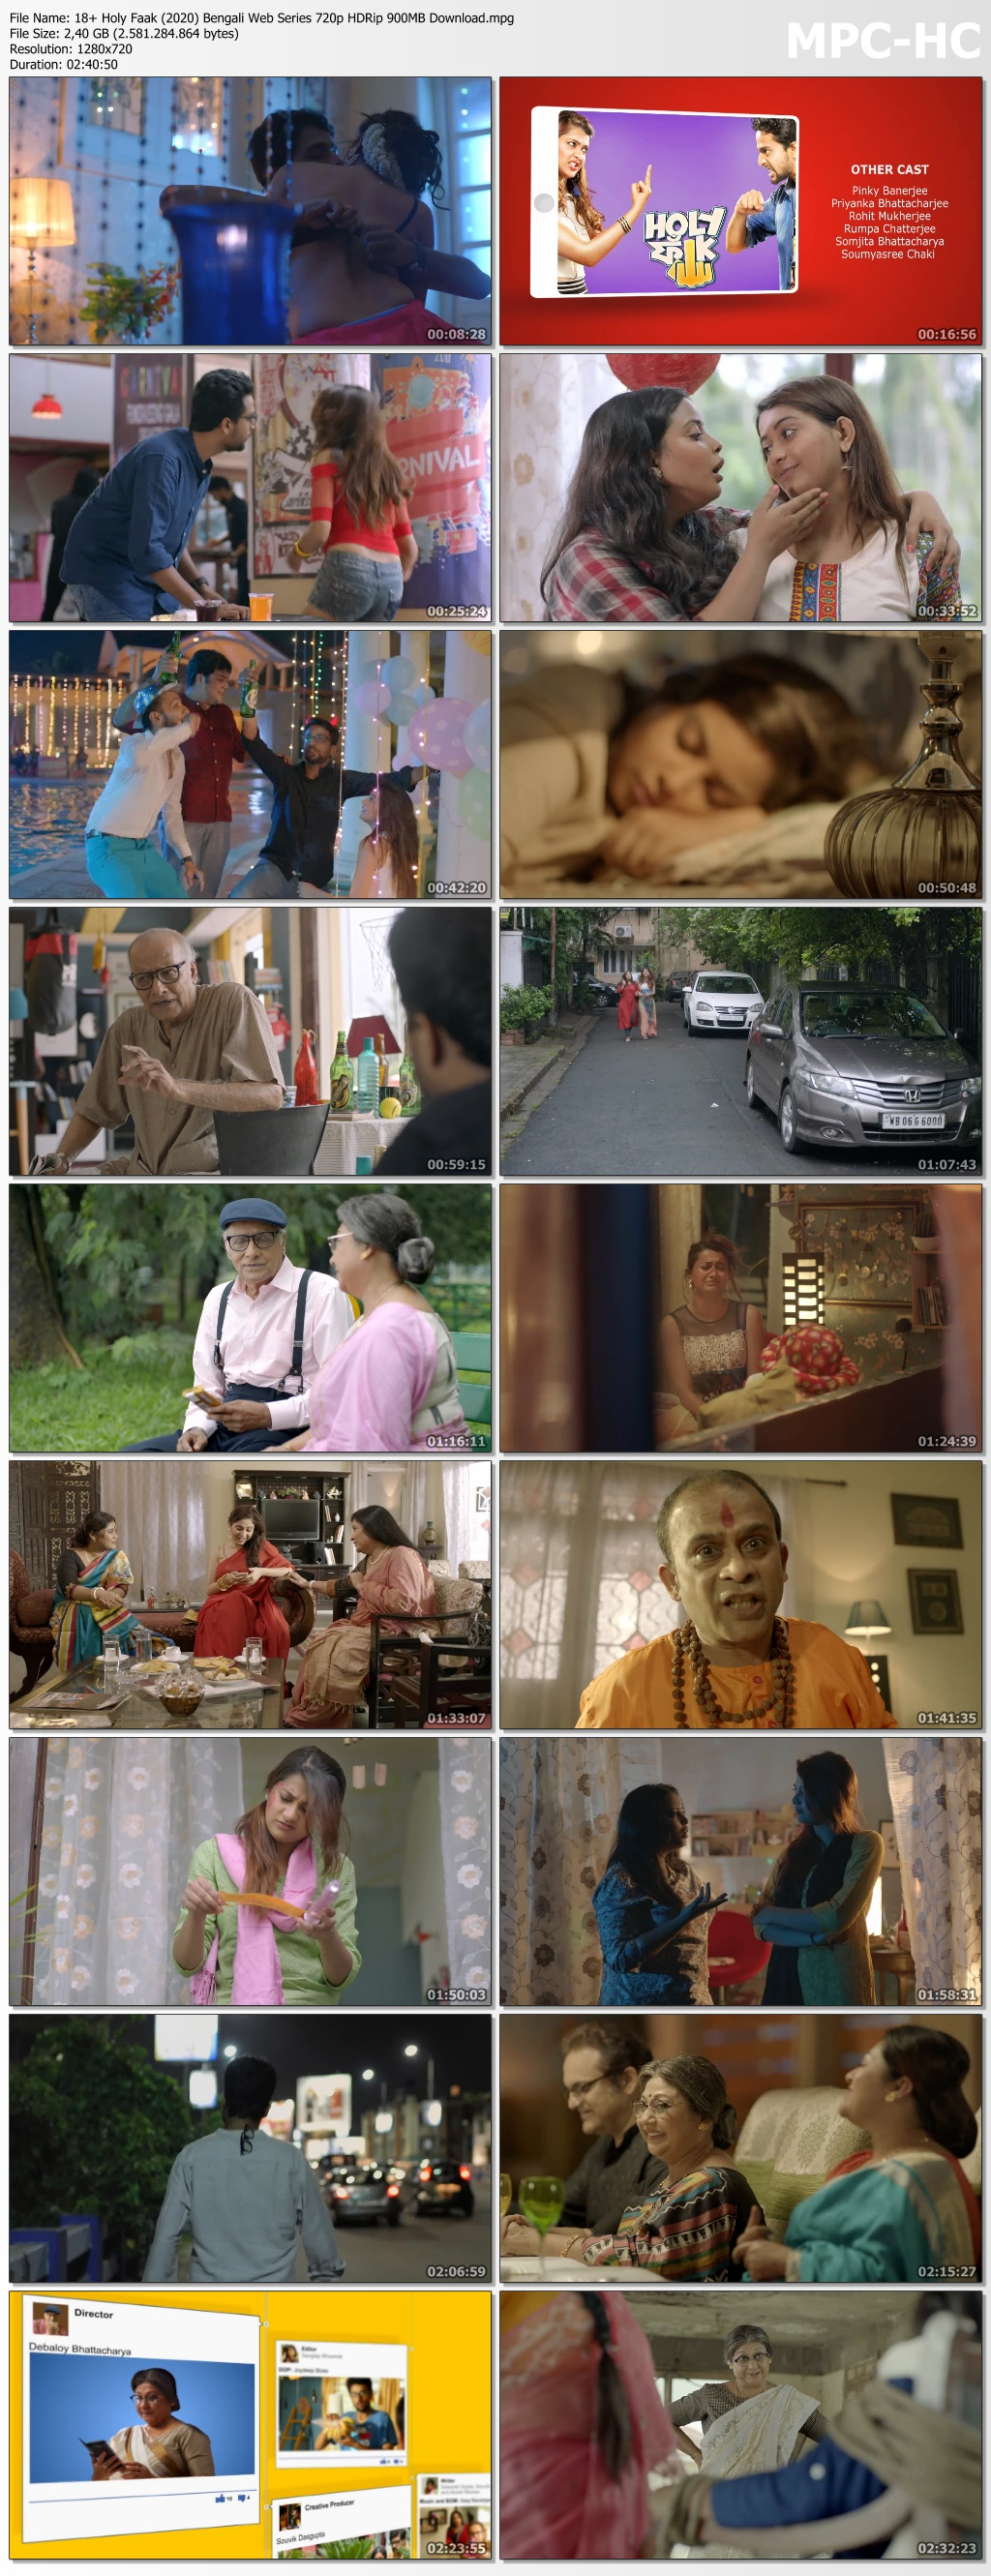 18-Holy-Faak-2020-Bengali-Web-Series-720p-HDRip-900-MB-Download-mpg-thumbs